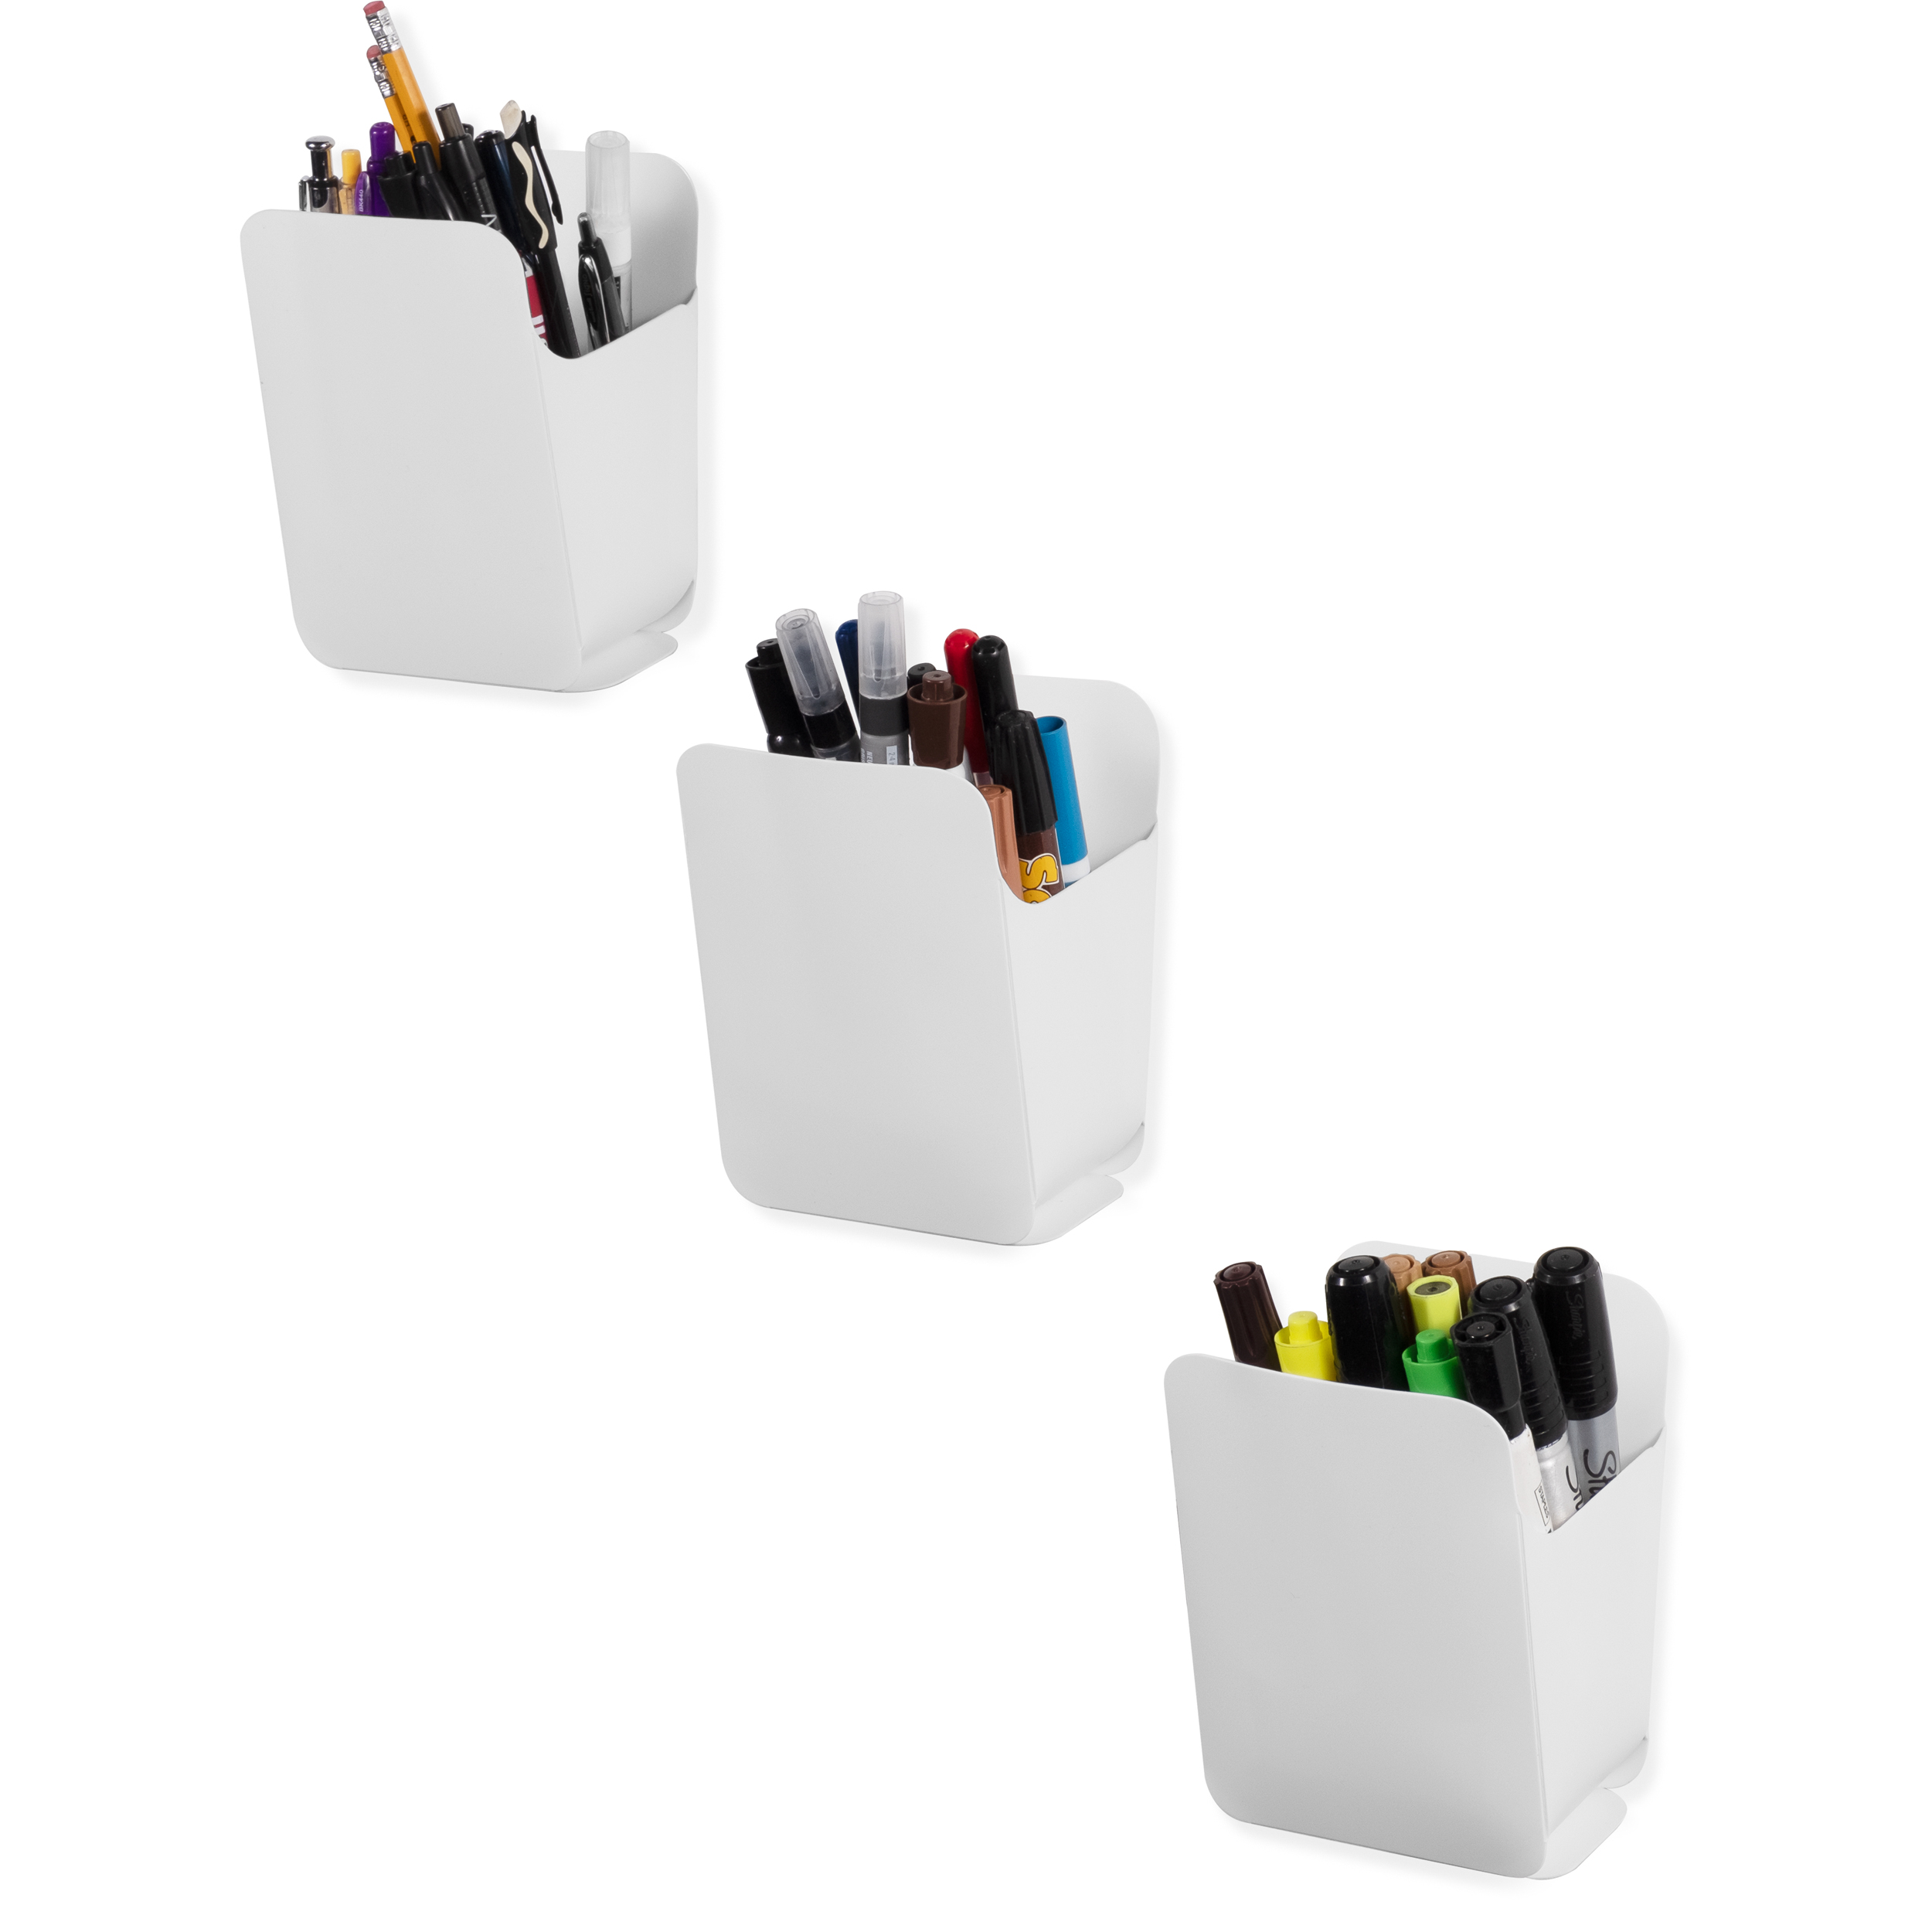 White Assembly Required Set of 3 Wallniture Origami Dry Erase Marker Pen Pencil Holder and Office Organizer Recycled Plastic